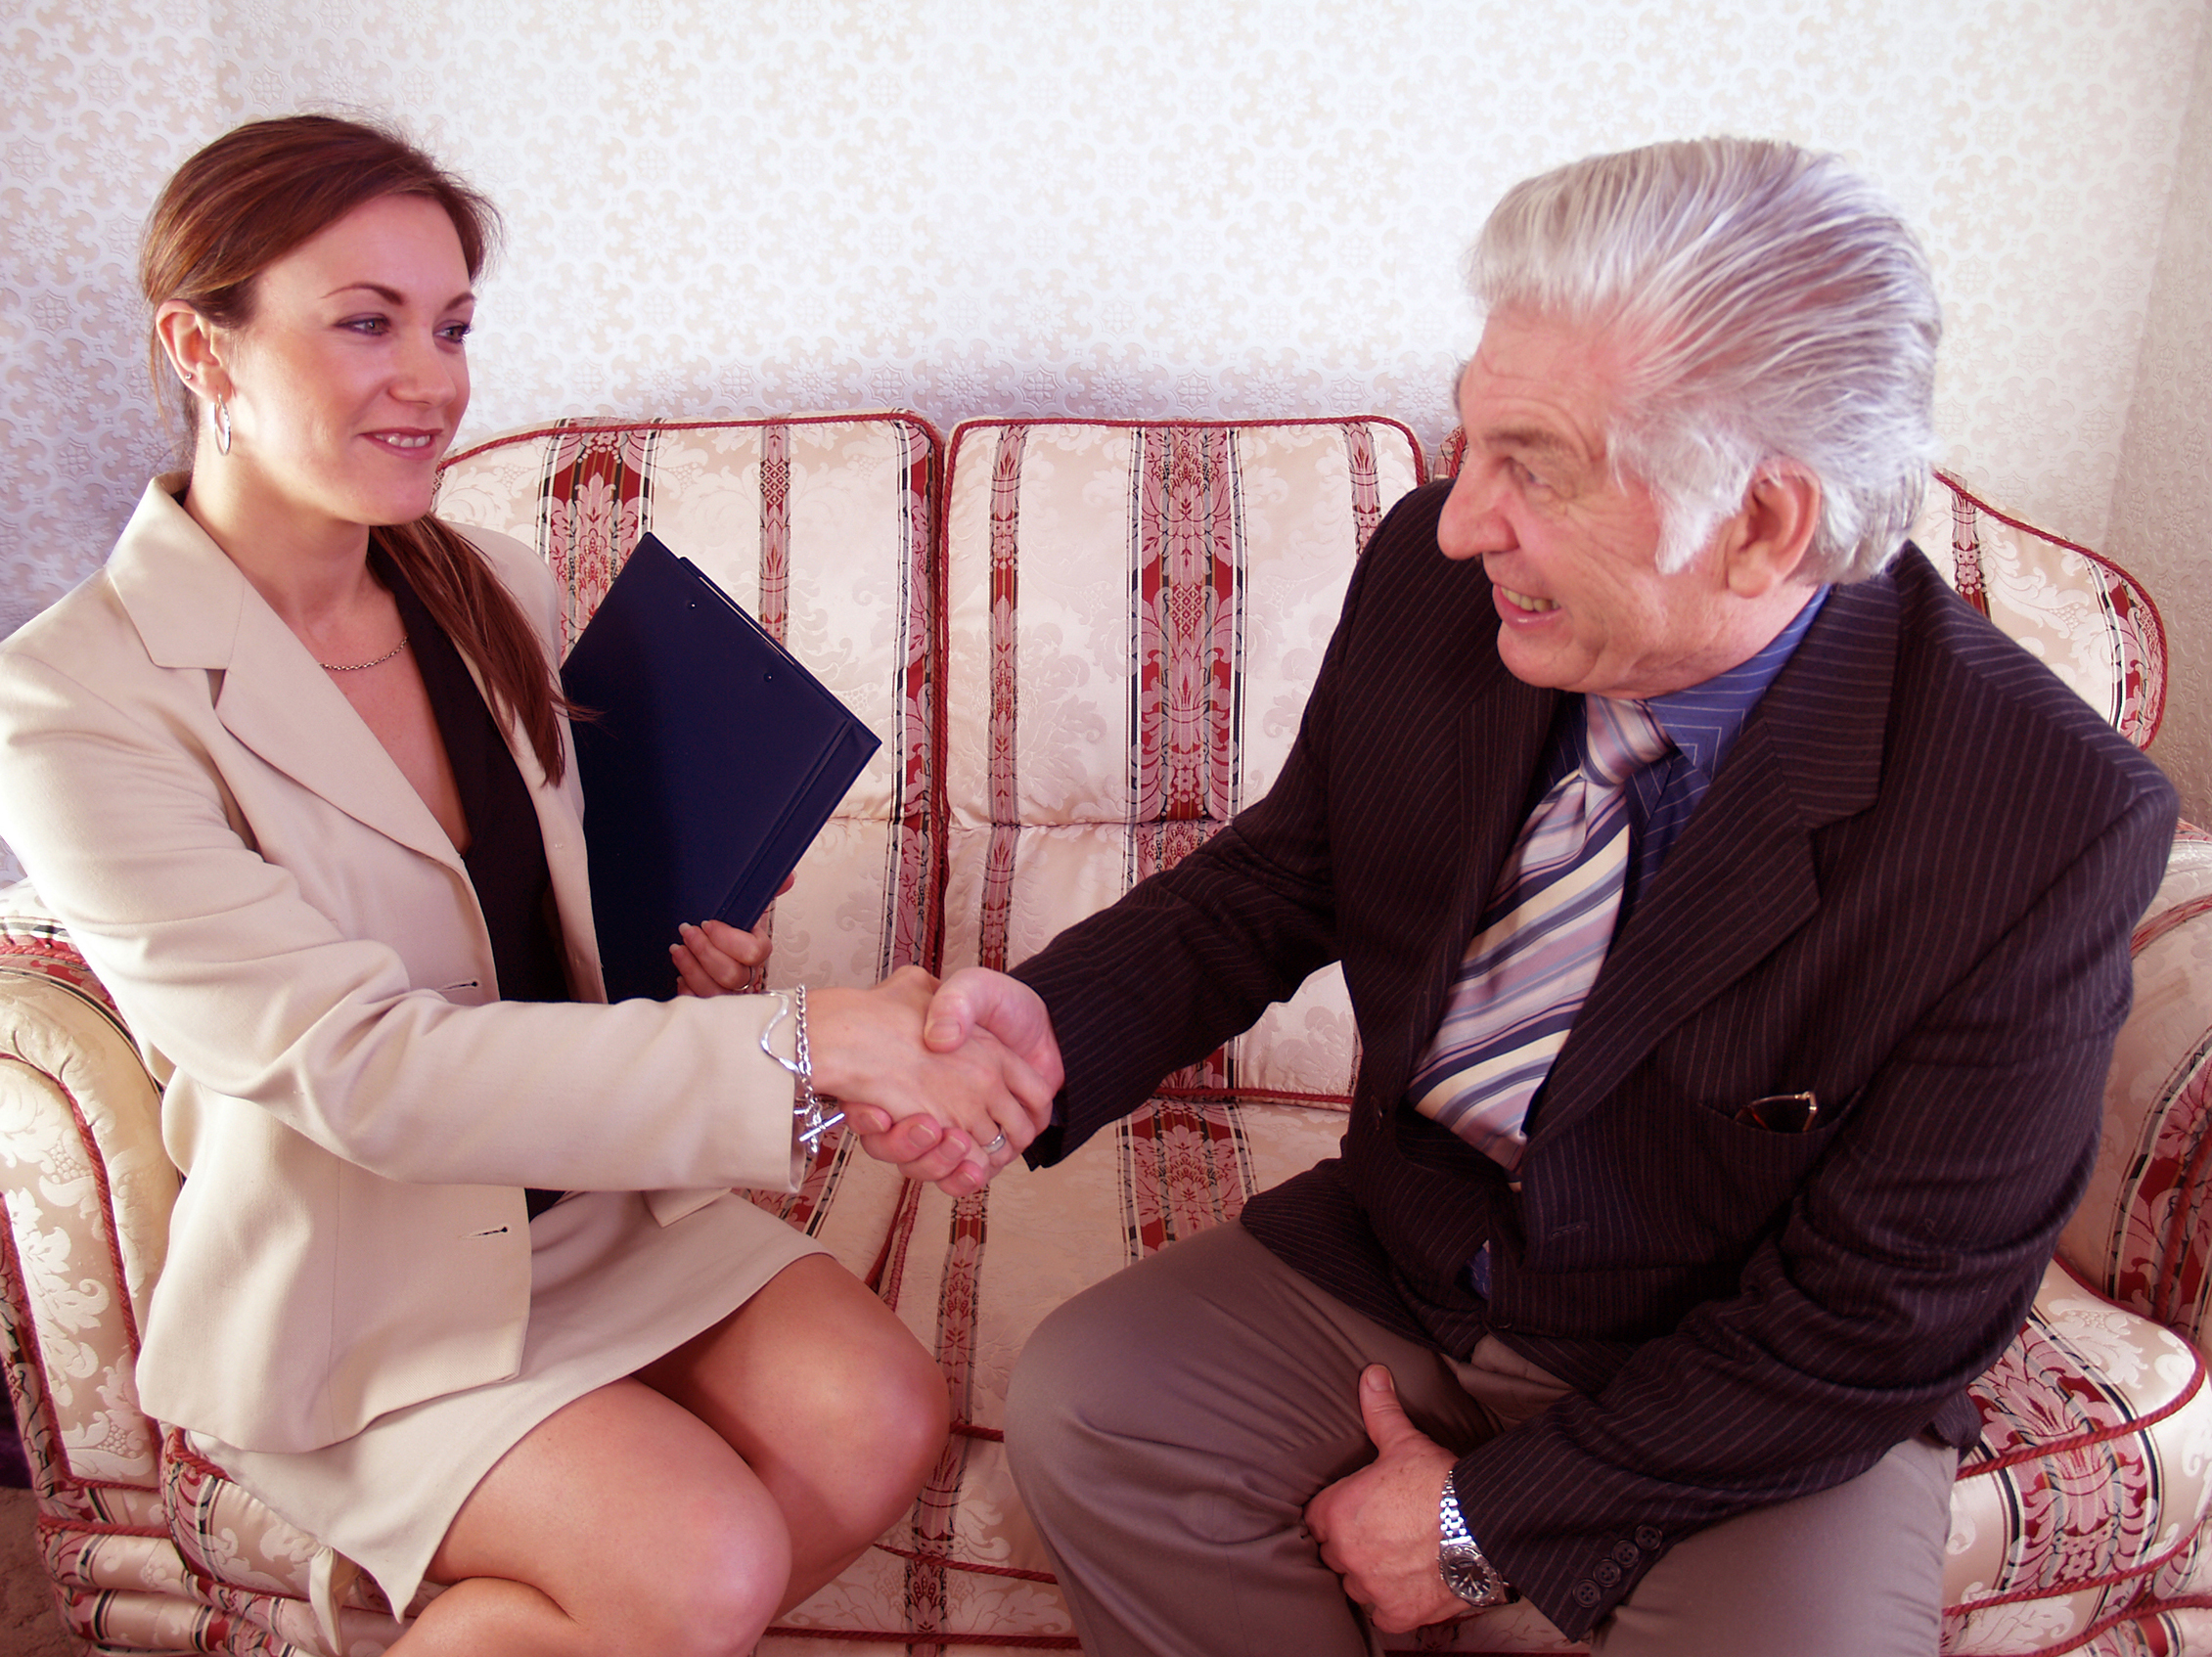 Shaking on concluding a successful deal couple